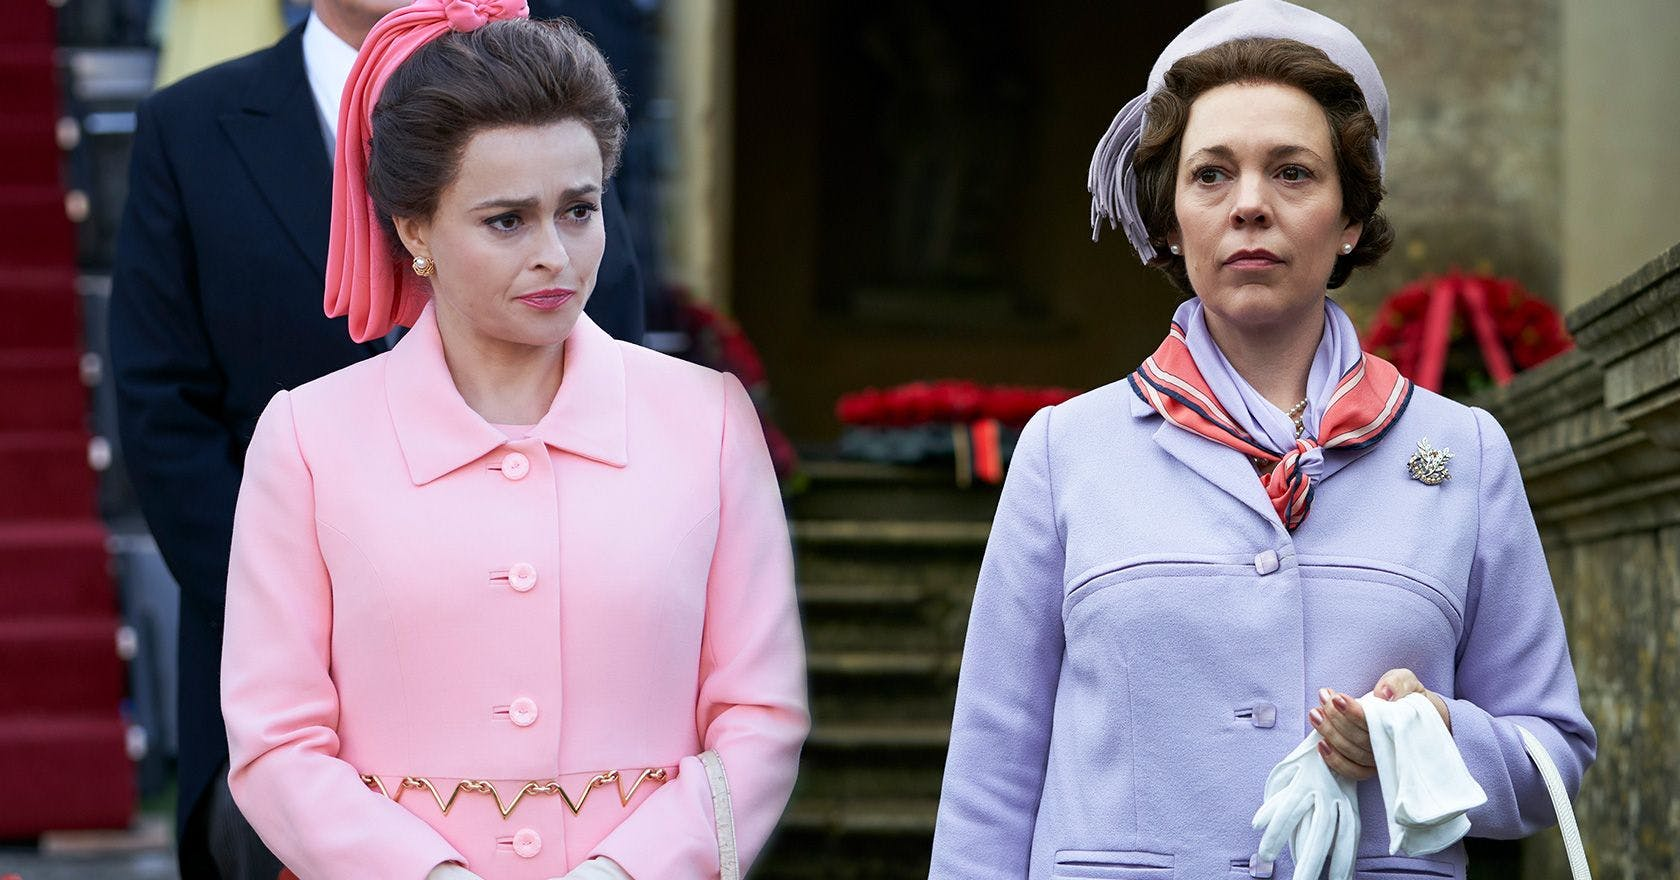 How close were the Queen and Princess Margaret in real life?